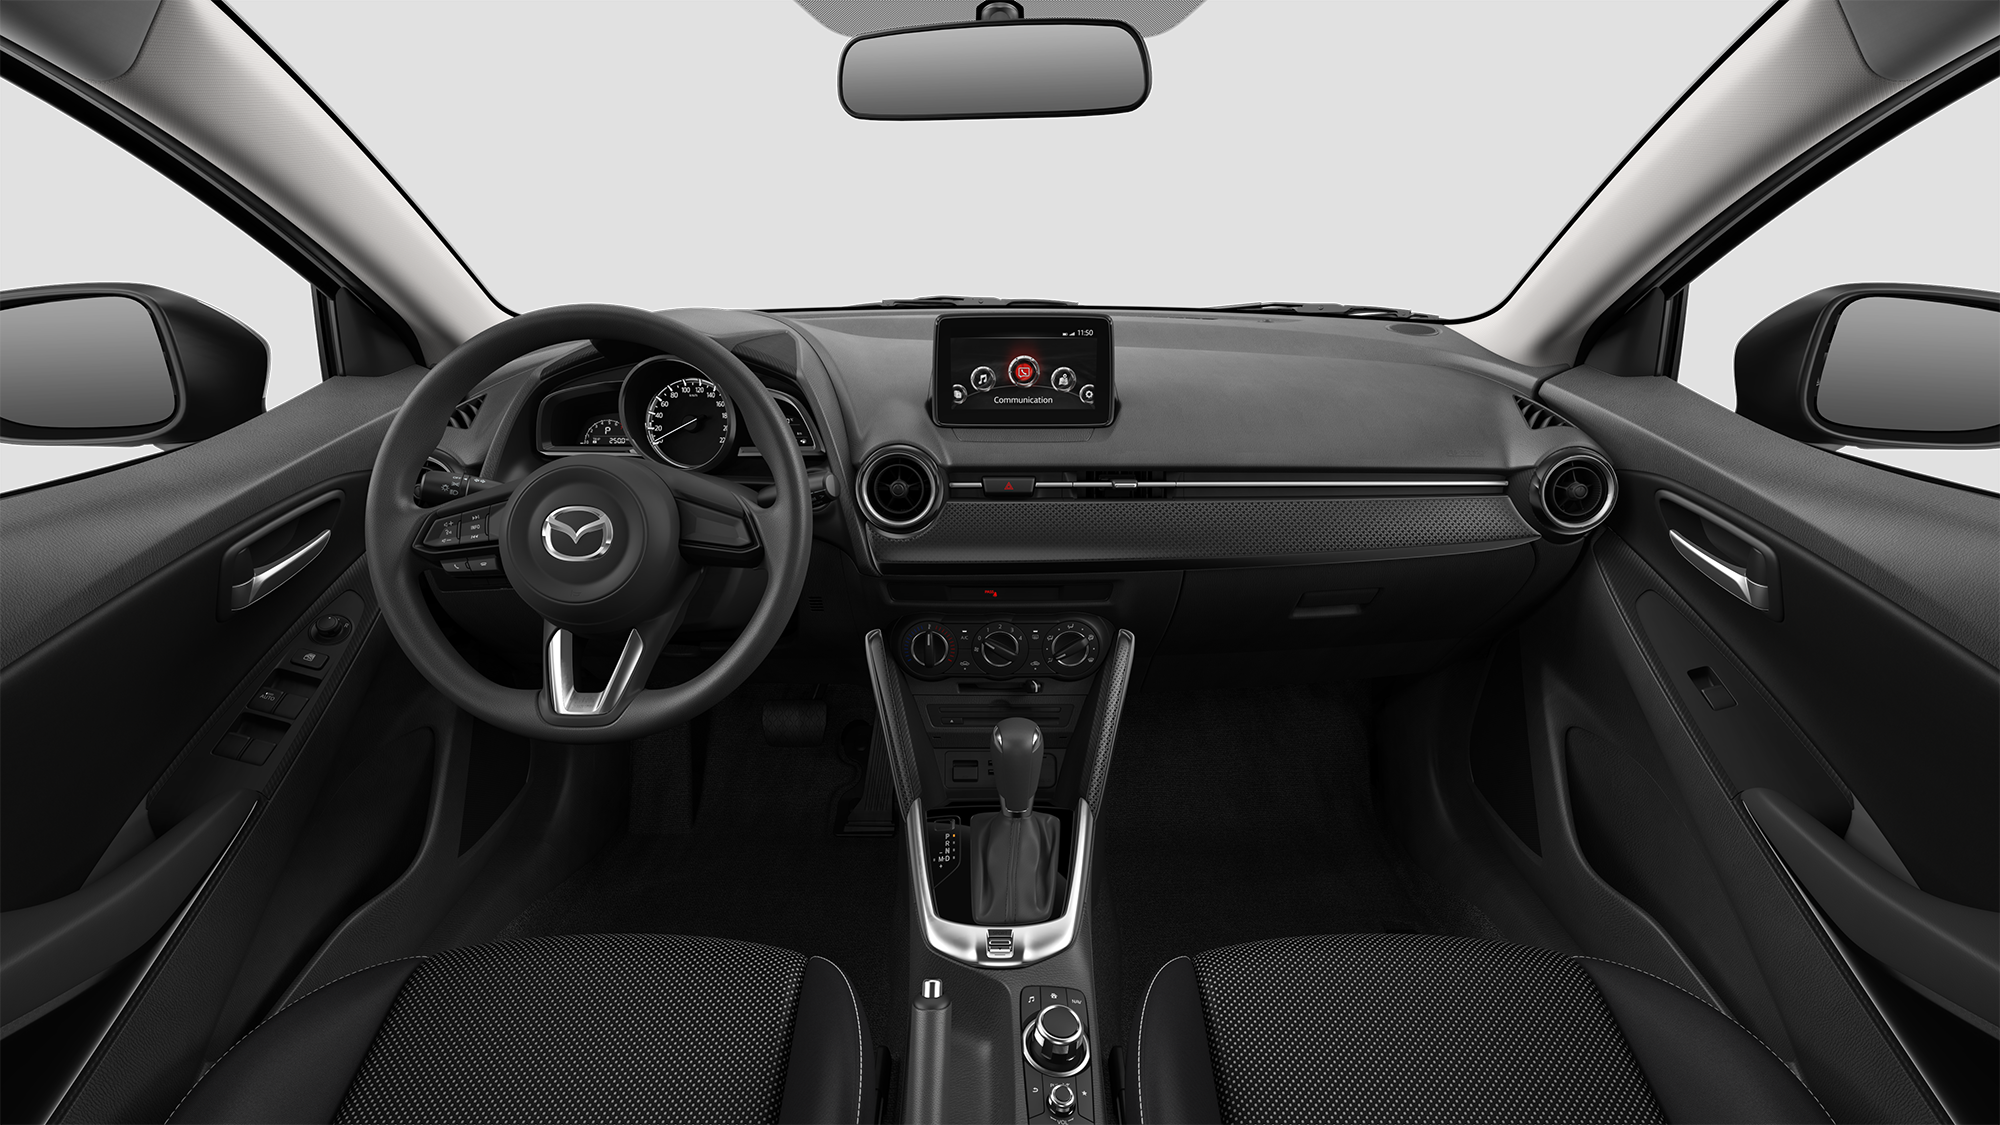 Mazda2 DLLR DM9GLAH 38P DAL INT High Transparentpng 2000